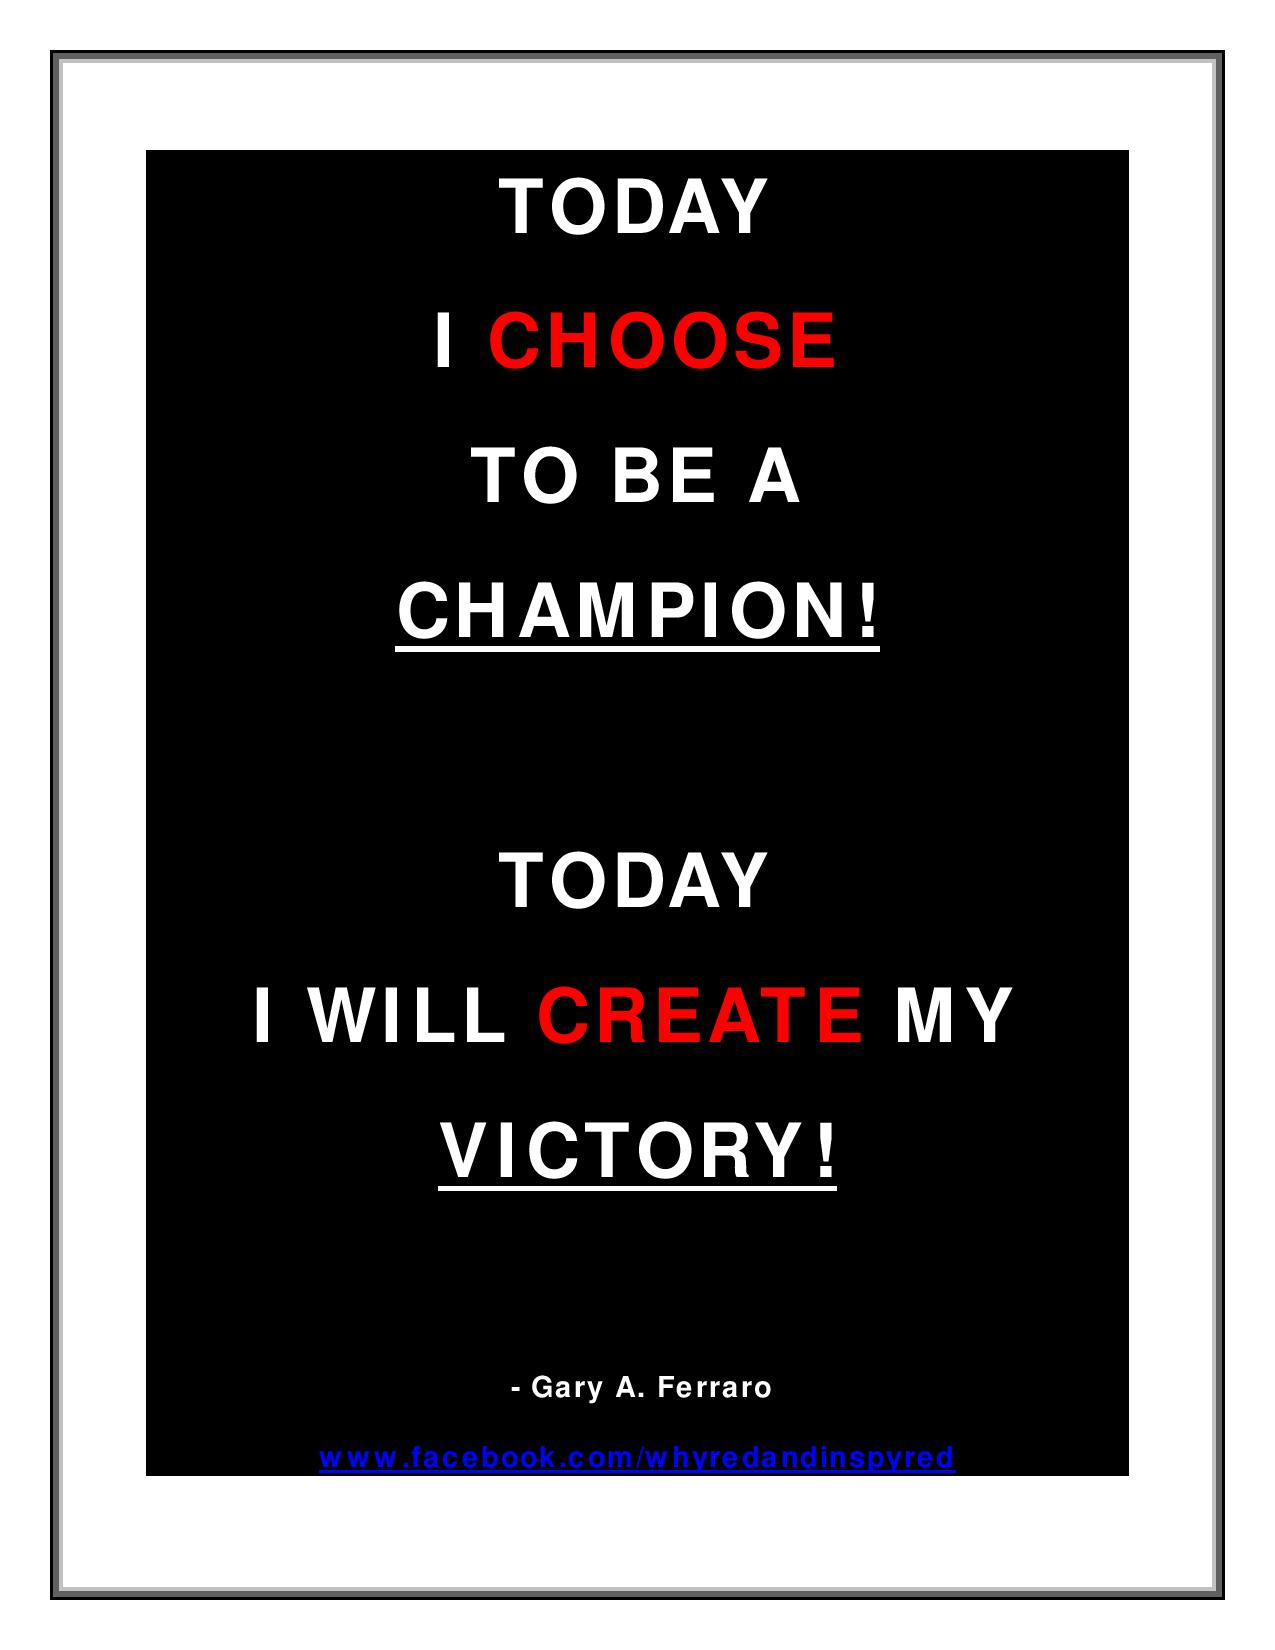 TODAY I CHOOSE TO BE A CHAMPION-BL-page-001